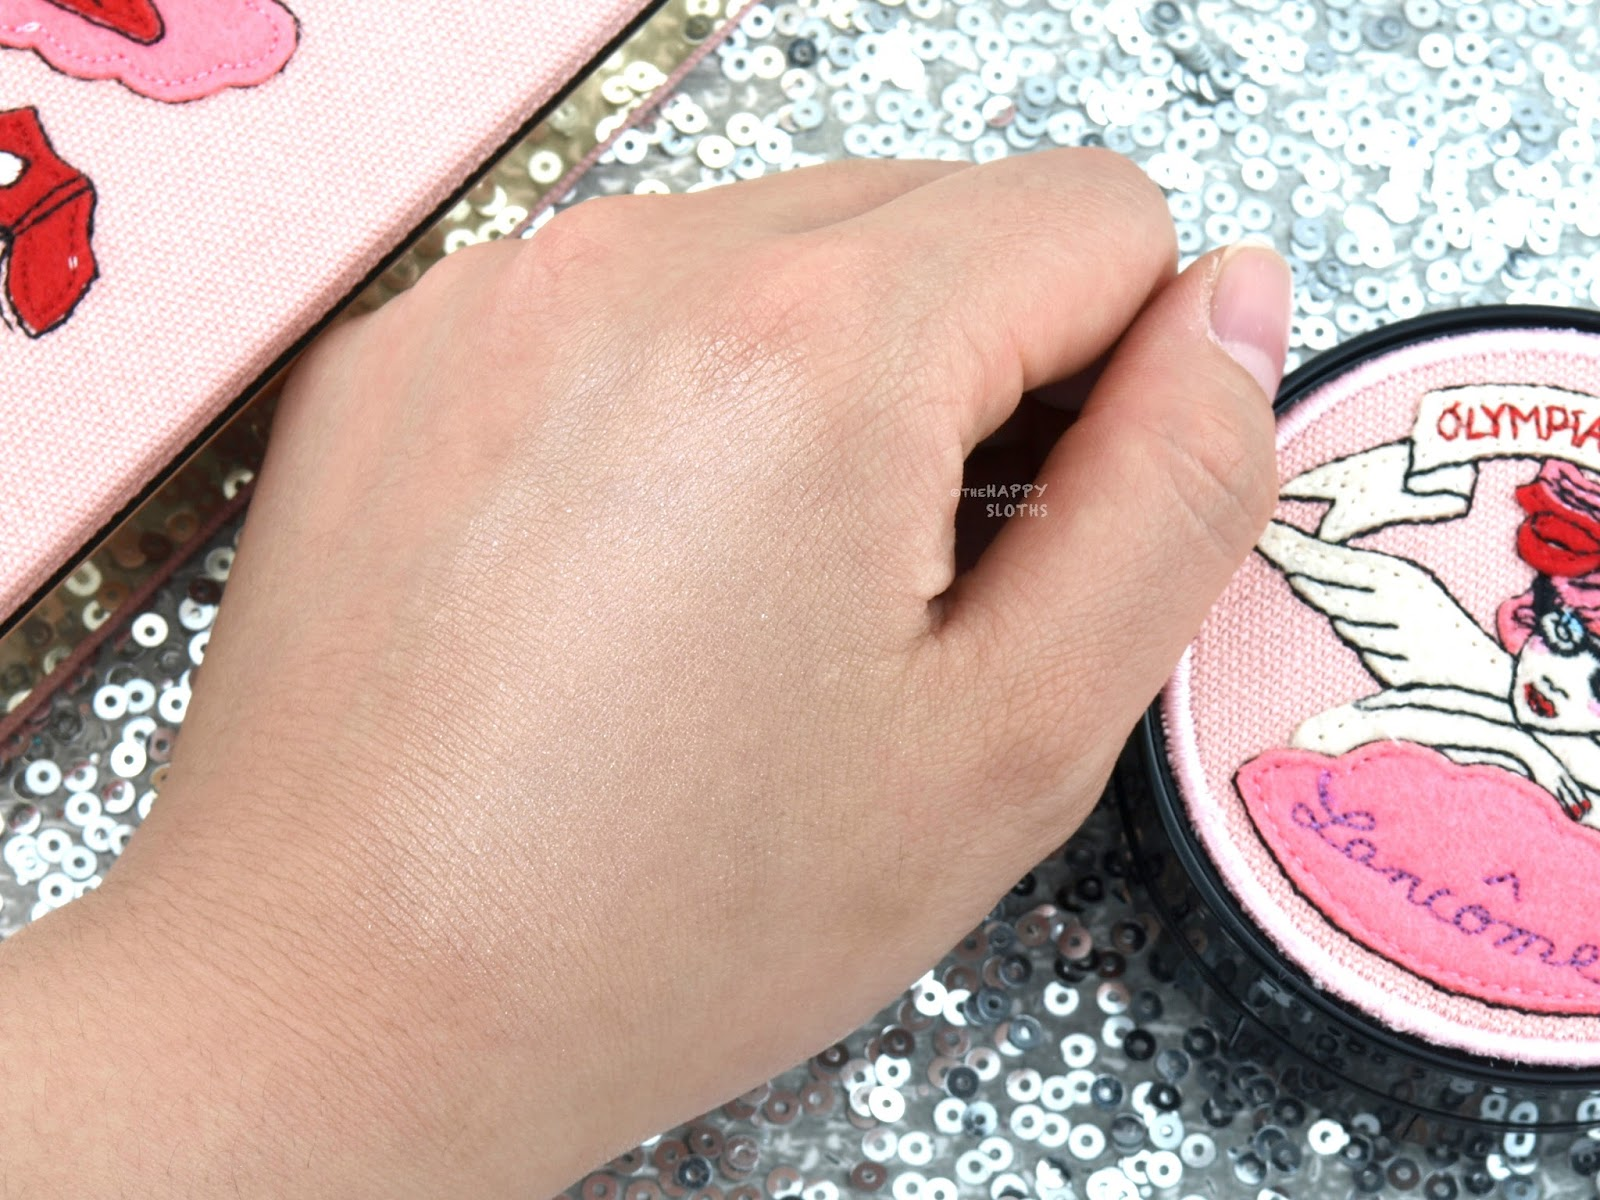 Lancome x Olympia Le-Tan | Cushion Highlighter: Swatches and Review